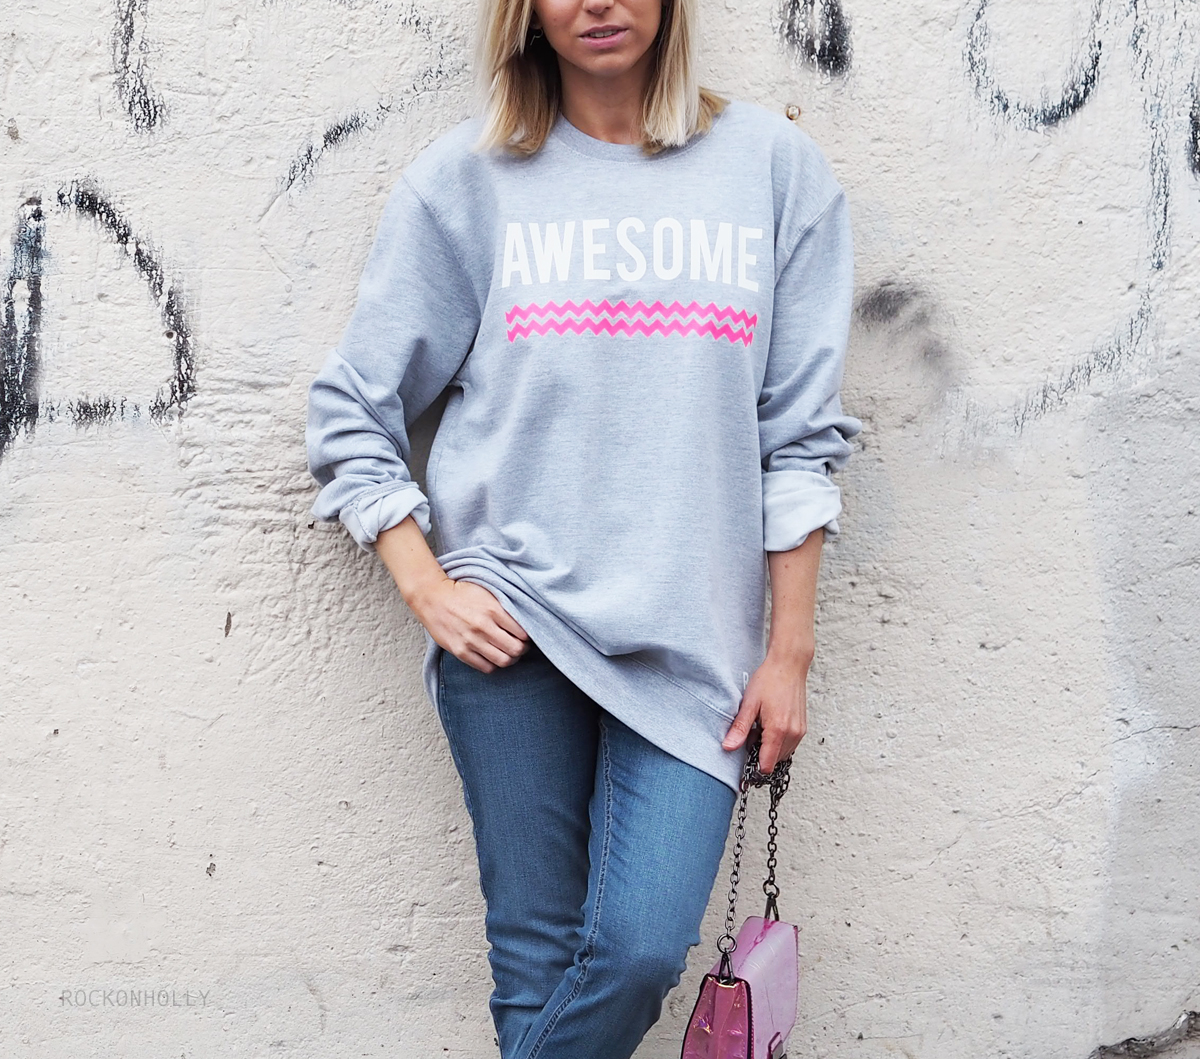 Awesome Tribal Jumper on the Rock On Holly Fashion Blog